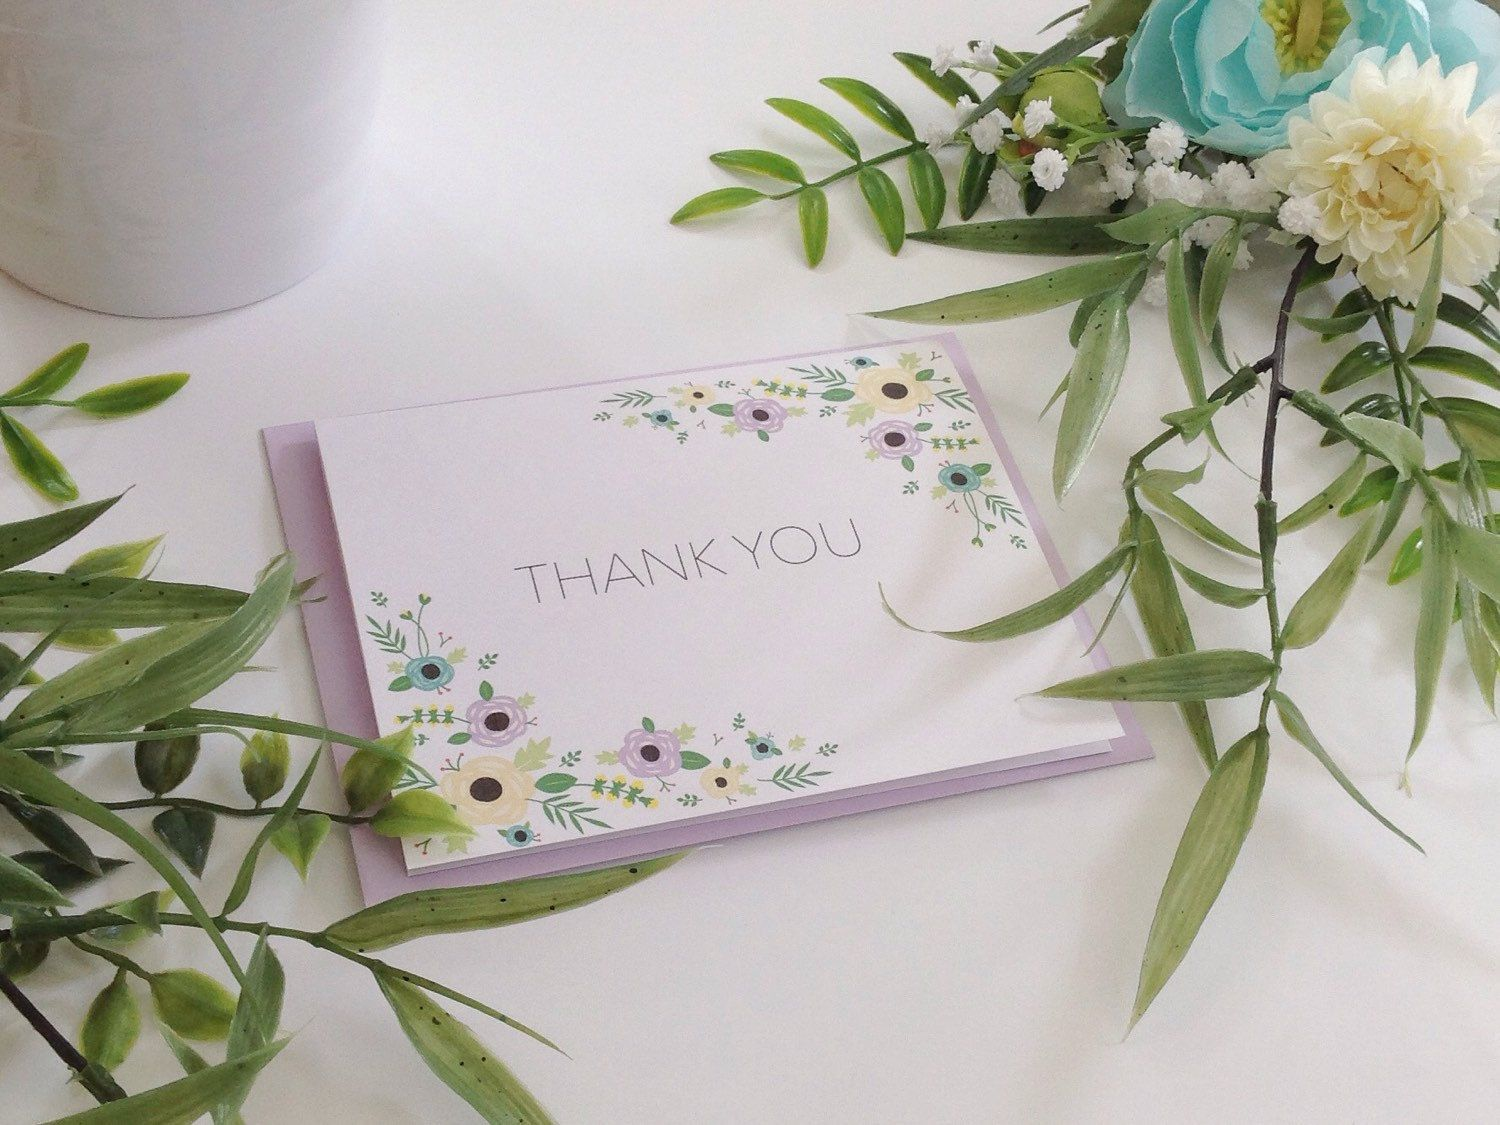 """5-pack/10-pack, """"Thank You"""" Cards & Lavender Envelopes, Two-Corner Floral Border by LittleOakCardCo on Etsy https://www.etsy.com/listing/261369310/5-pack10-pack-thank-you-cards-lavender"""